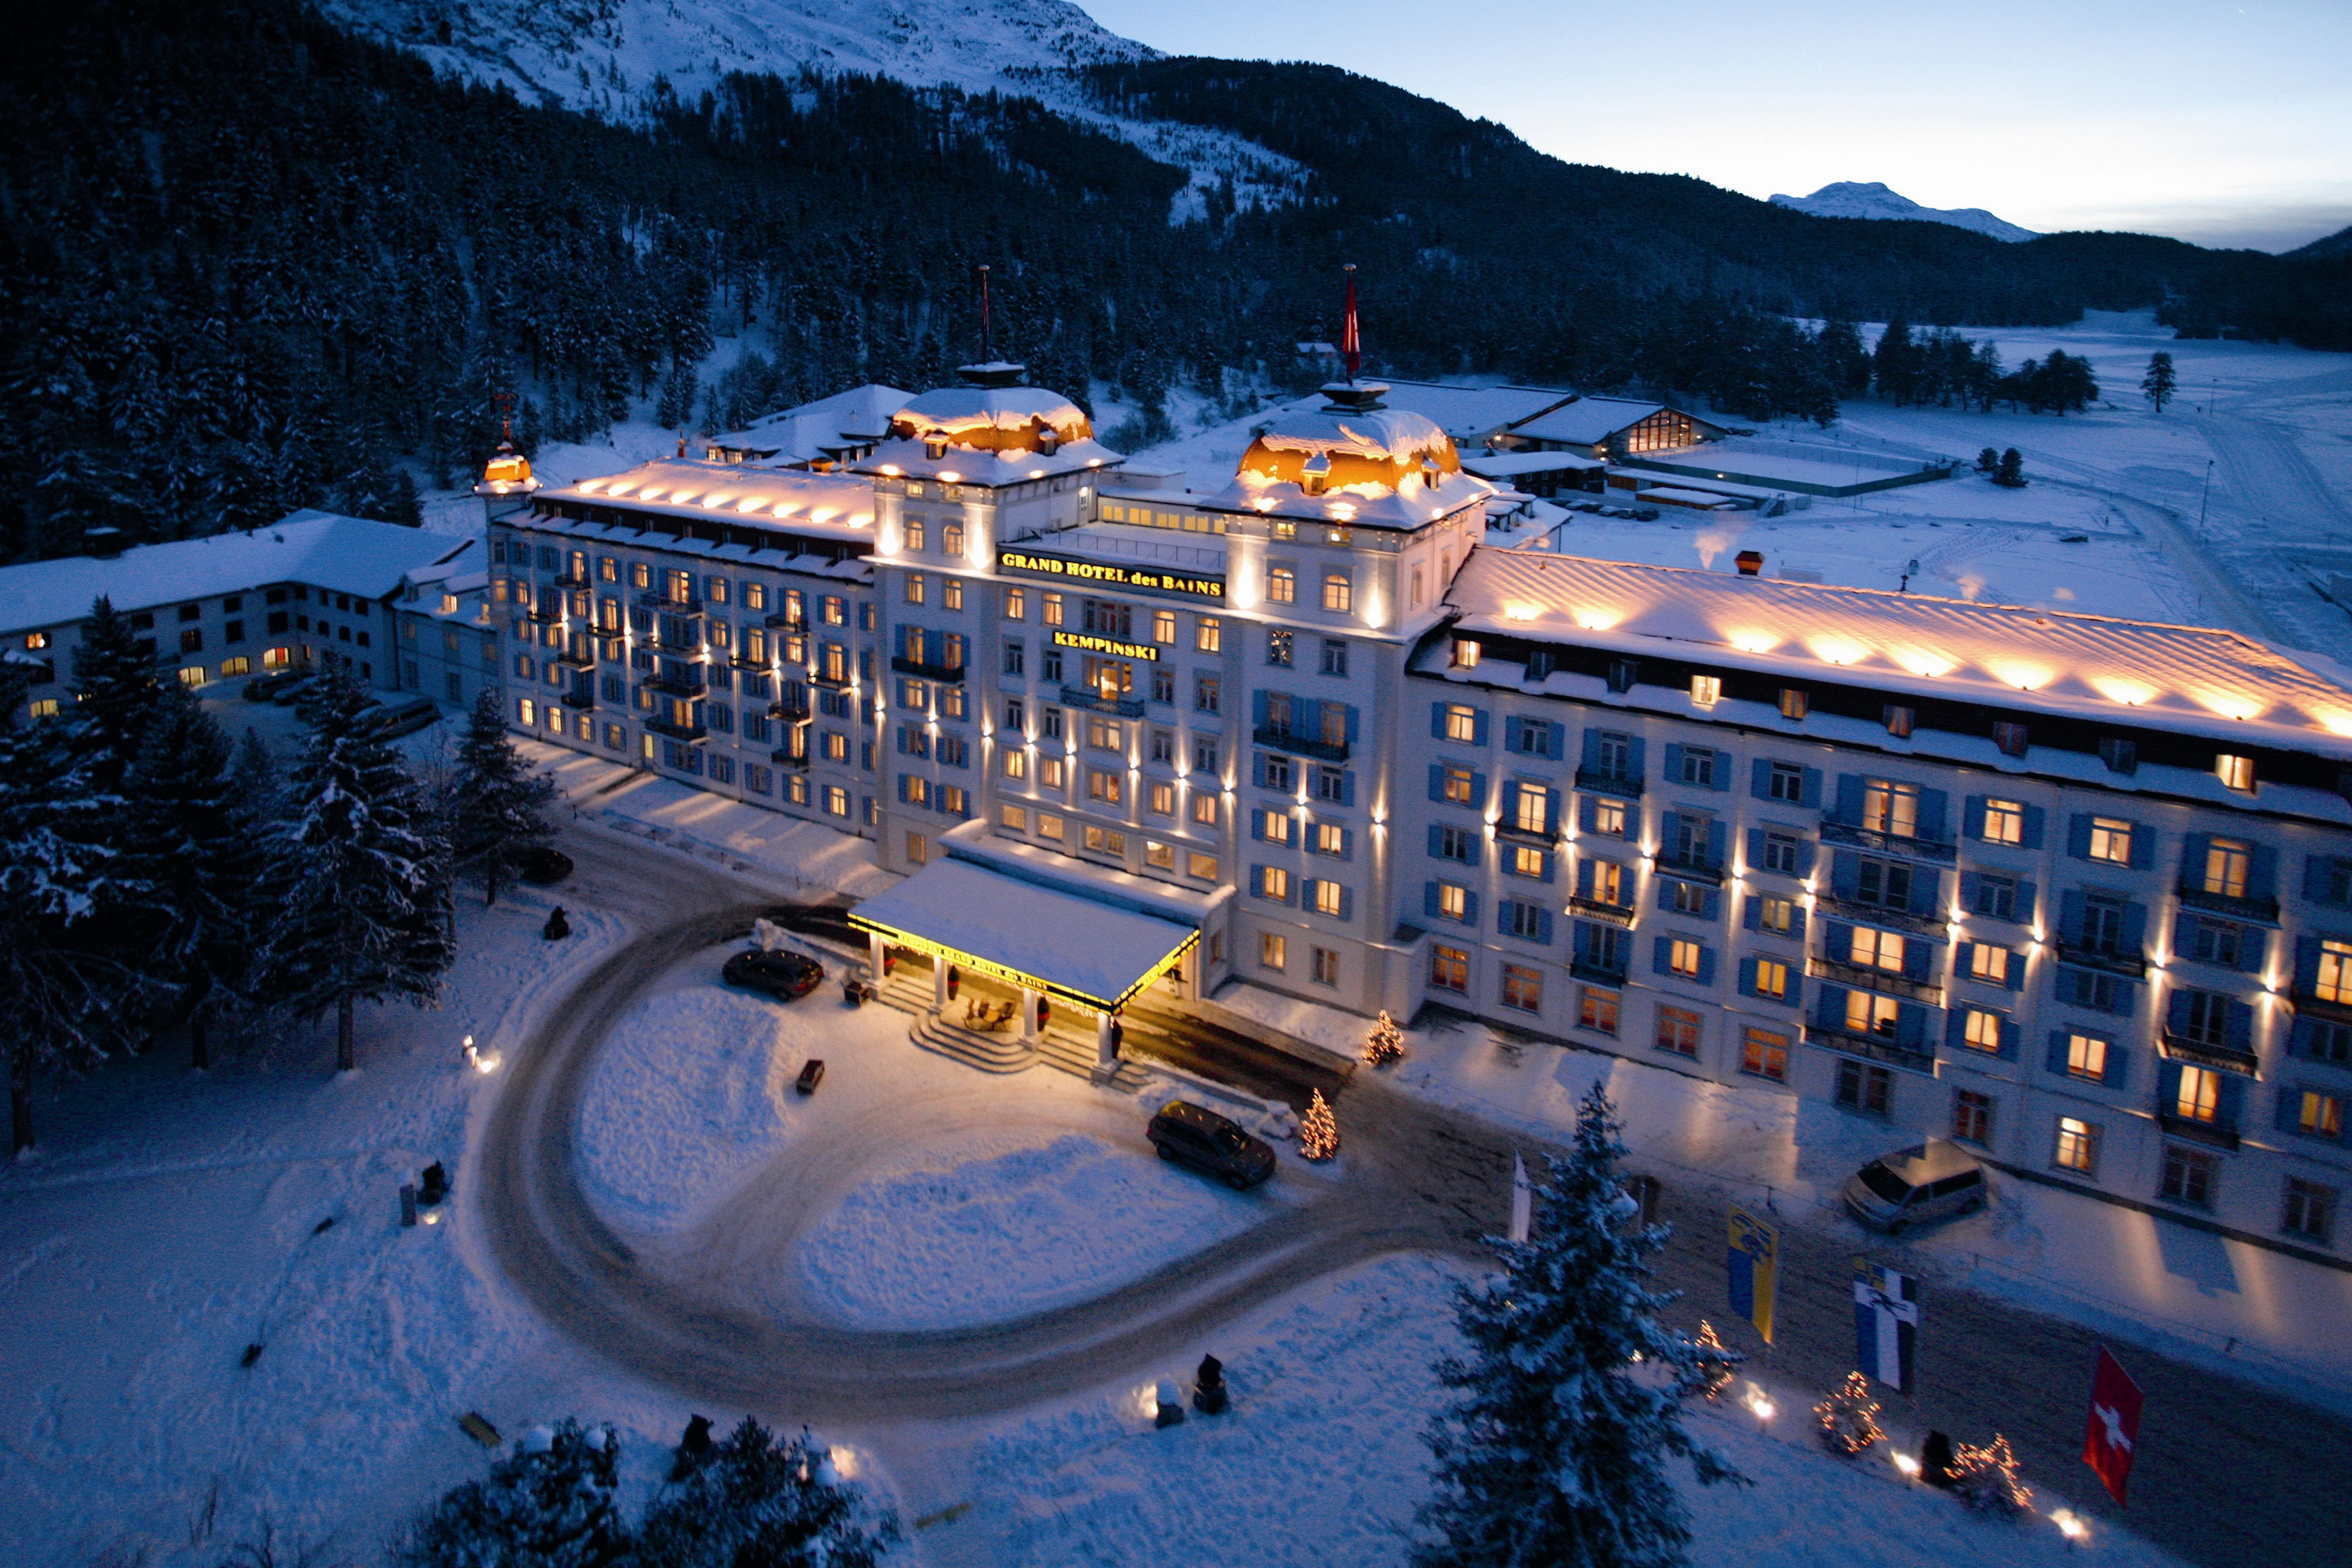 Kempinski grand hotel des bains st moritz world of for Grand hotel des bain